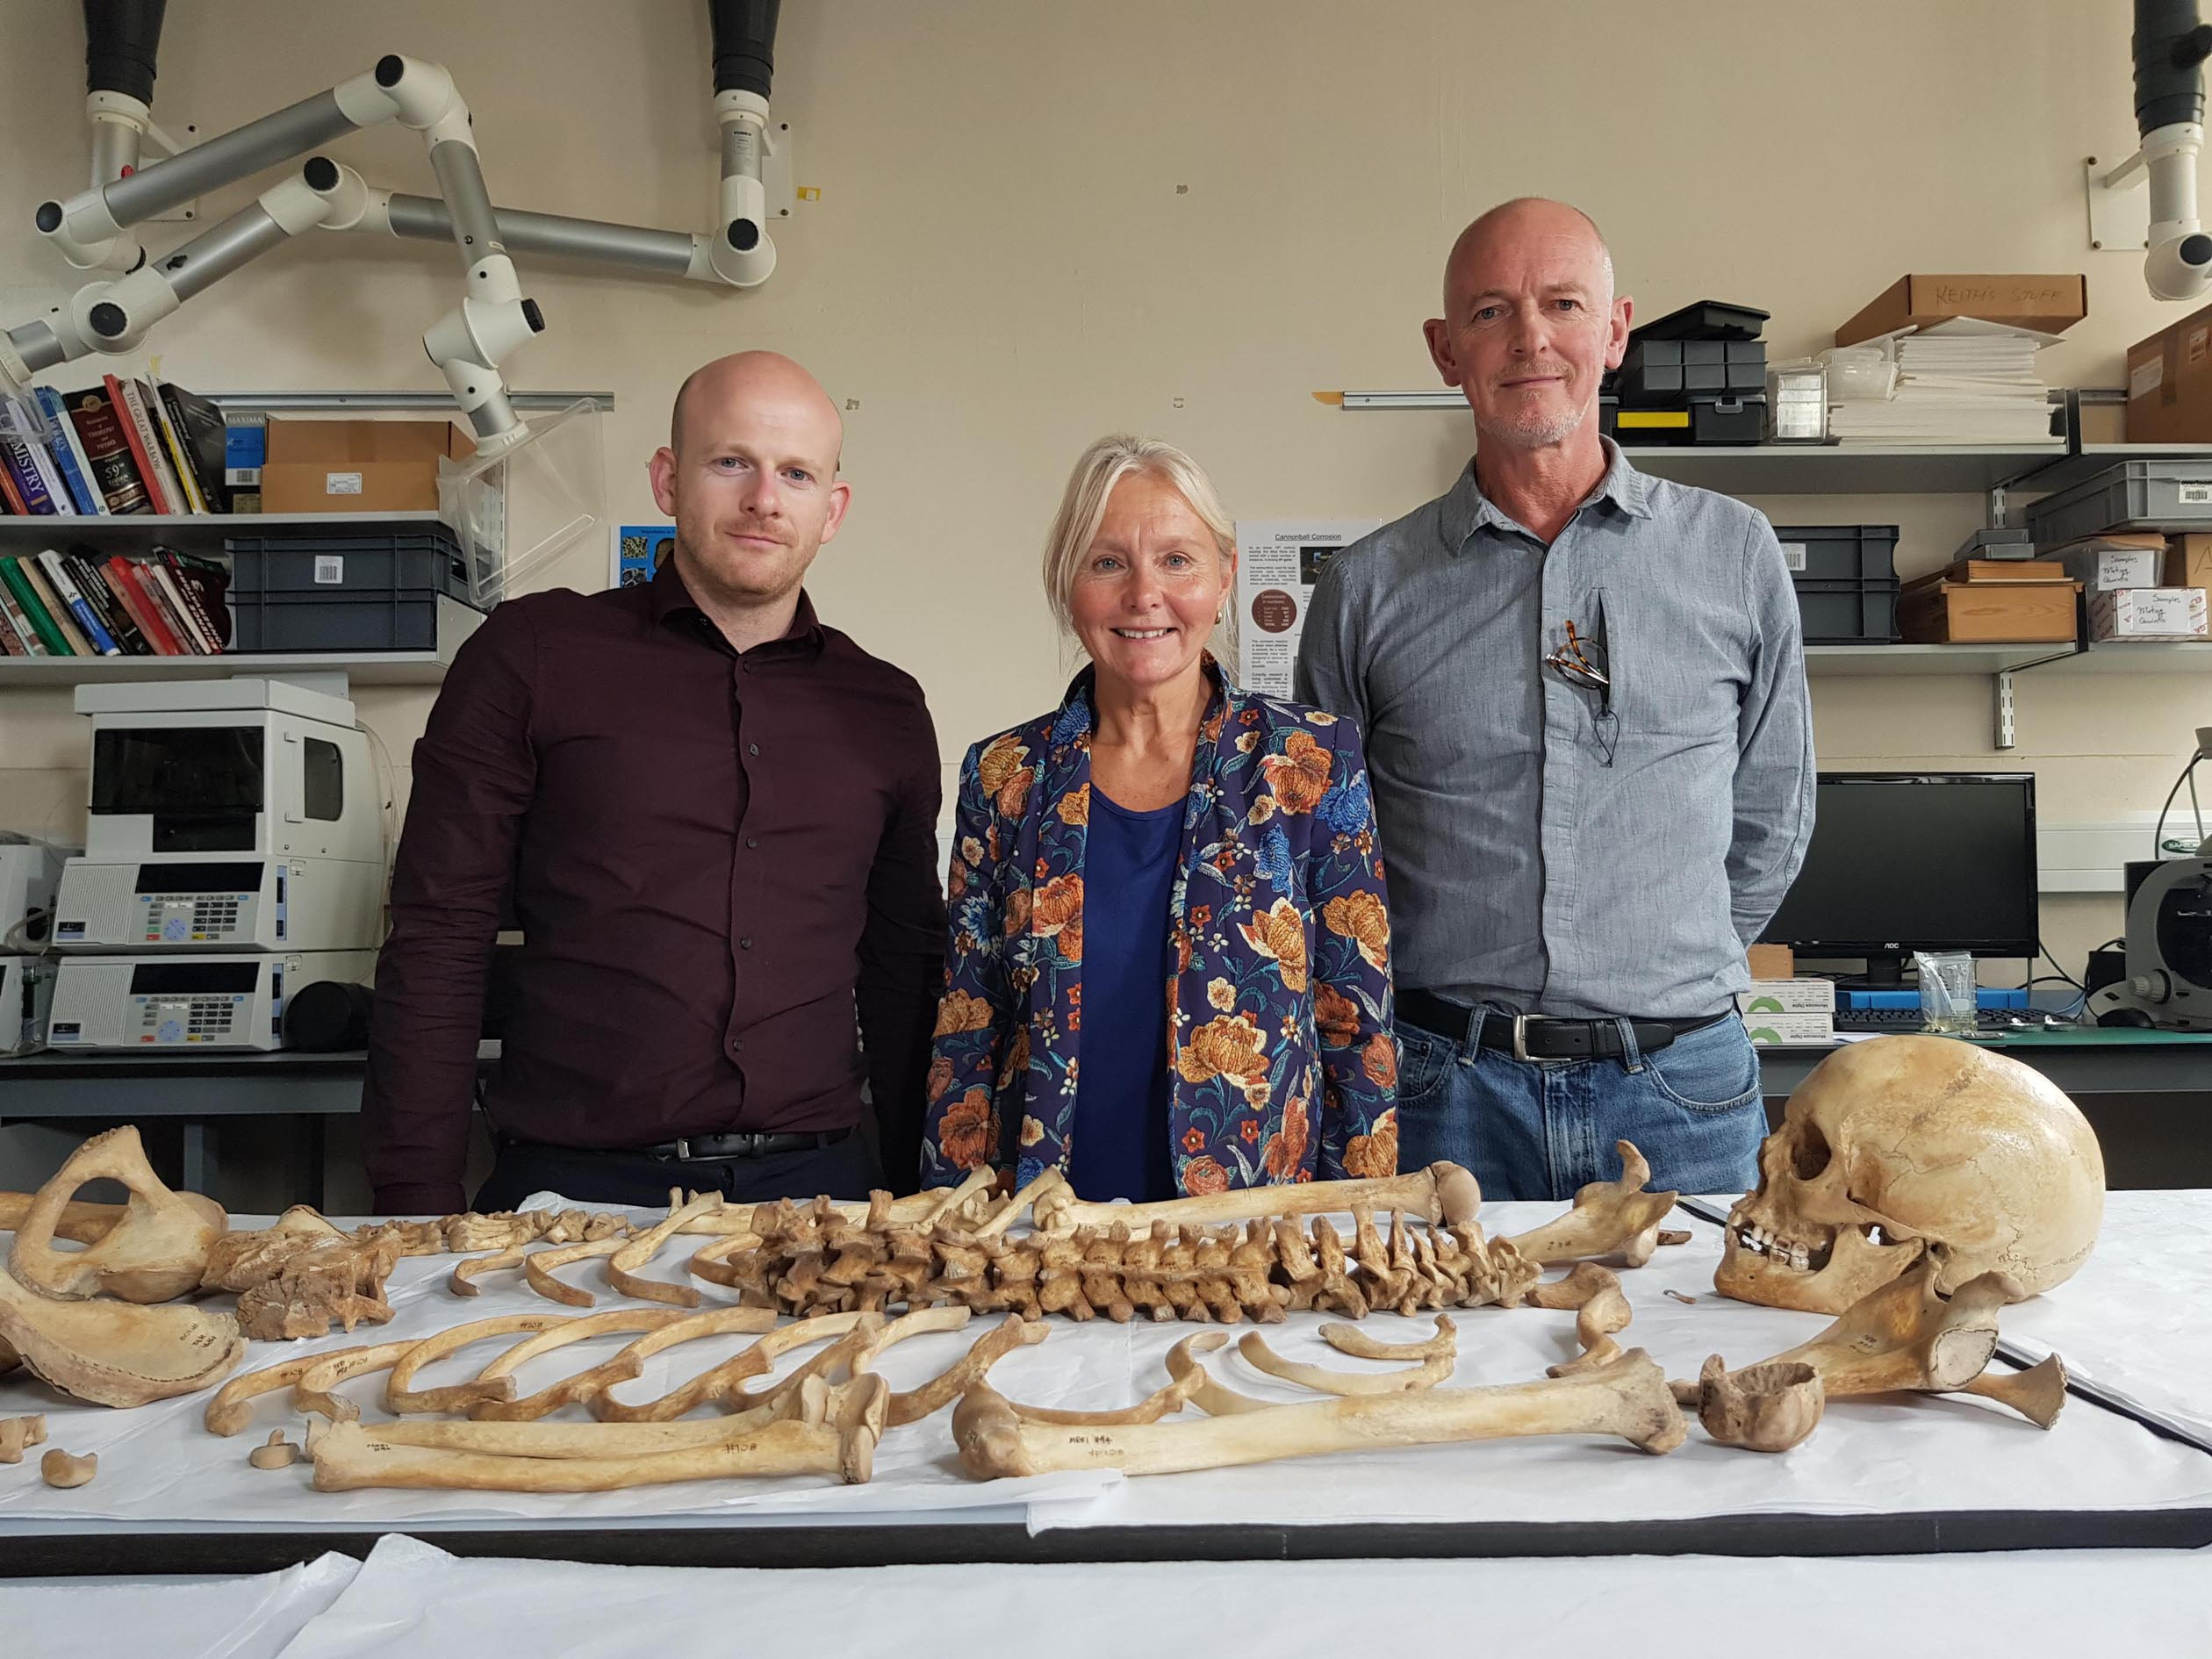 Skeletons of the Mary Rose: Dr Richard Madgwick, Alex Hildred and Nick Owen examining the skeleton from the Mary Rose